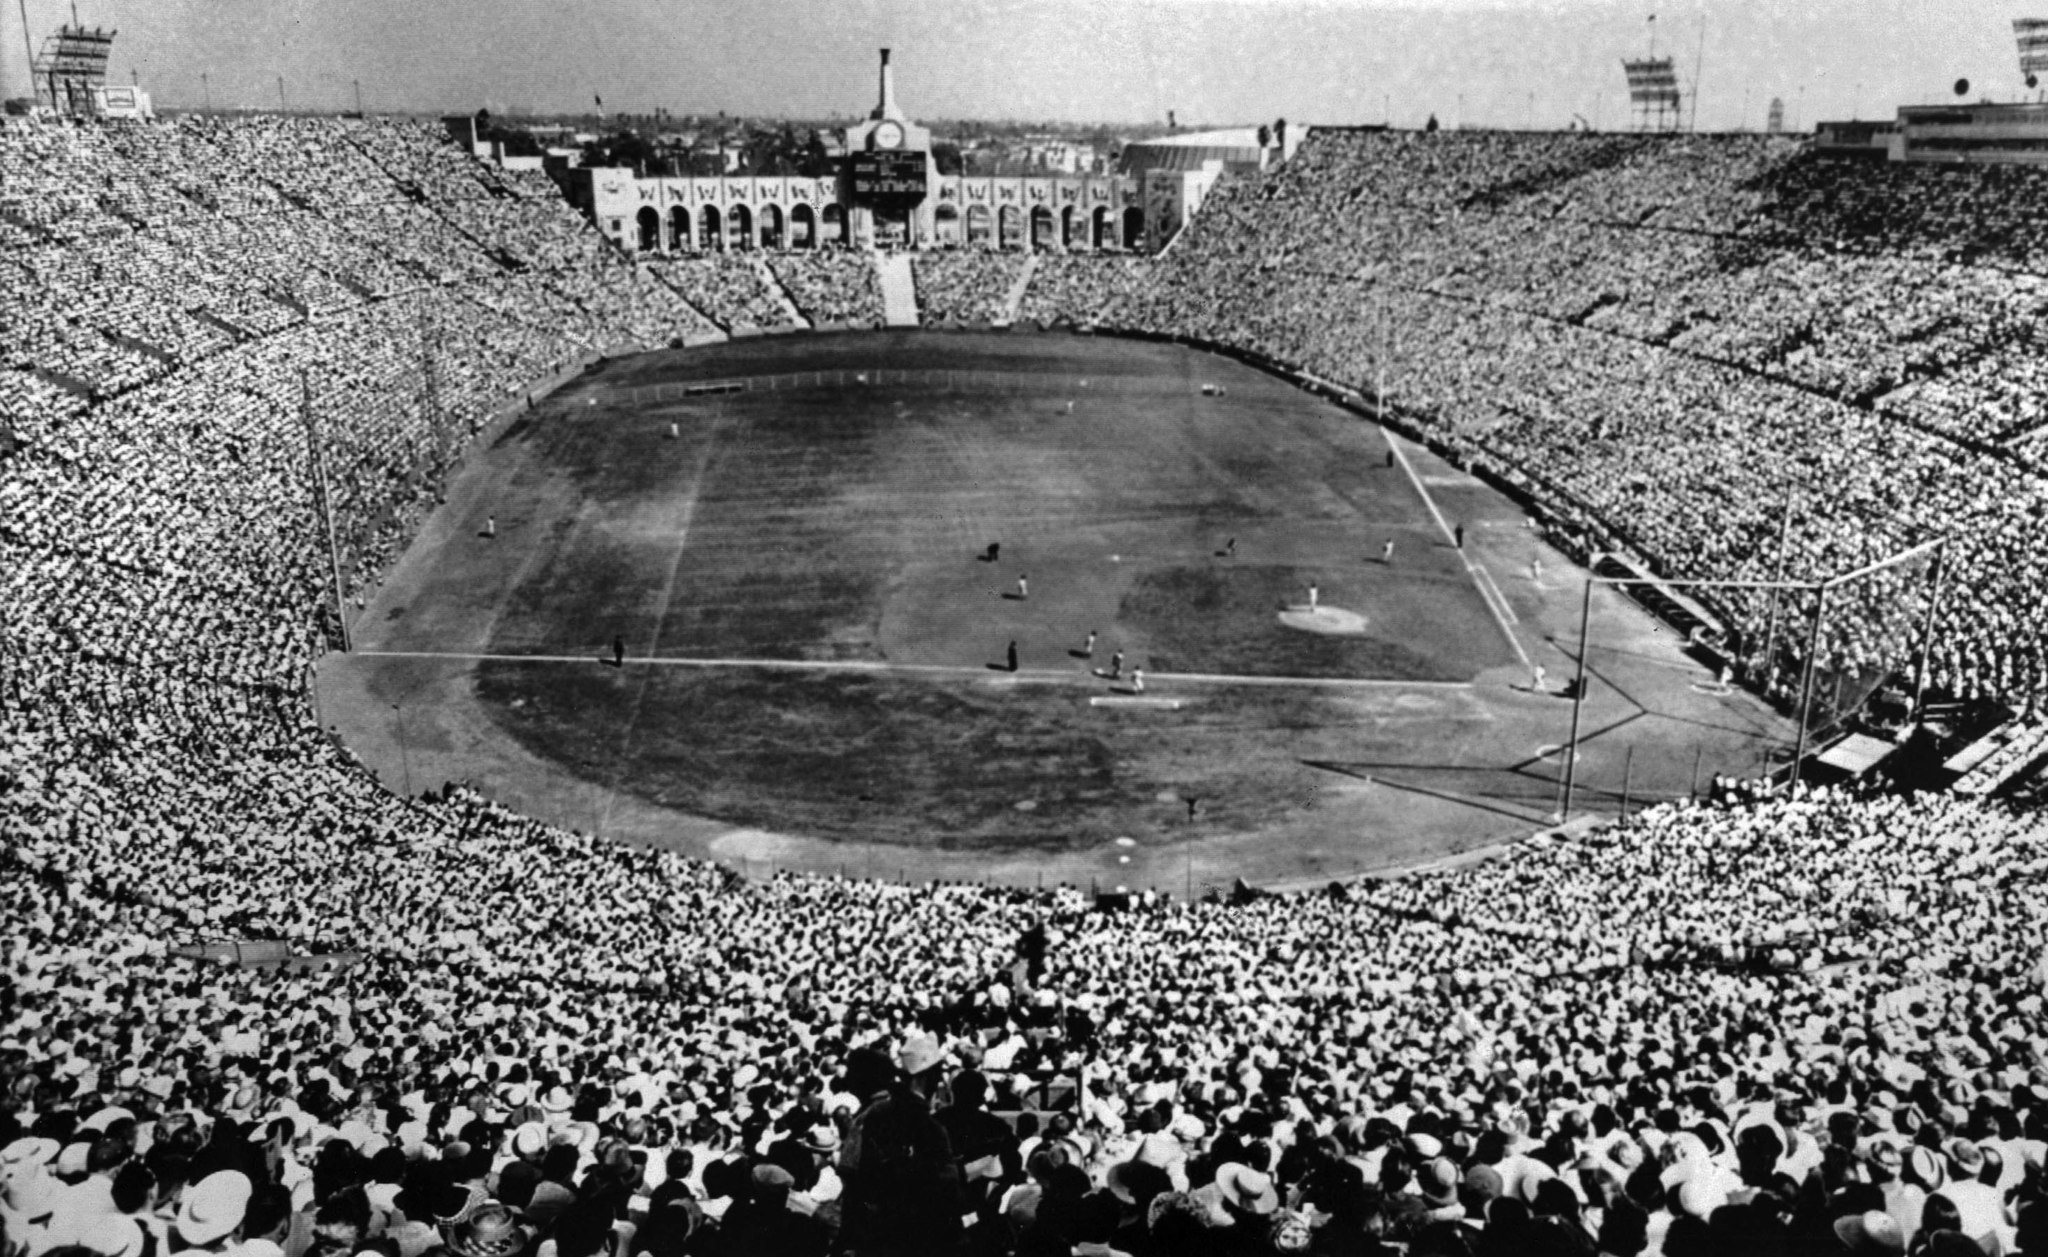 October 6, 1959:The Los Angeles Coliseum duriing the fifth game of the World Series between the Los